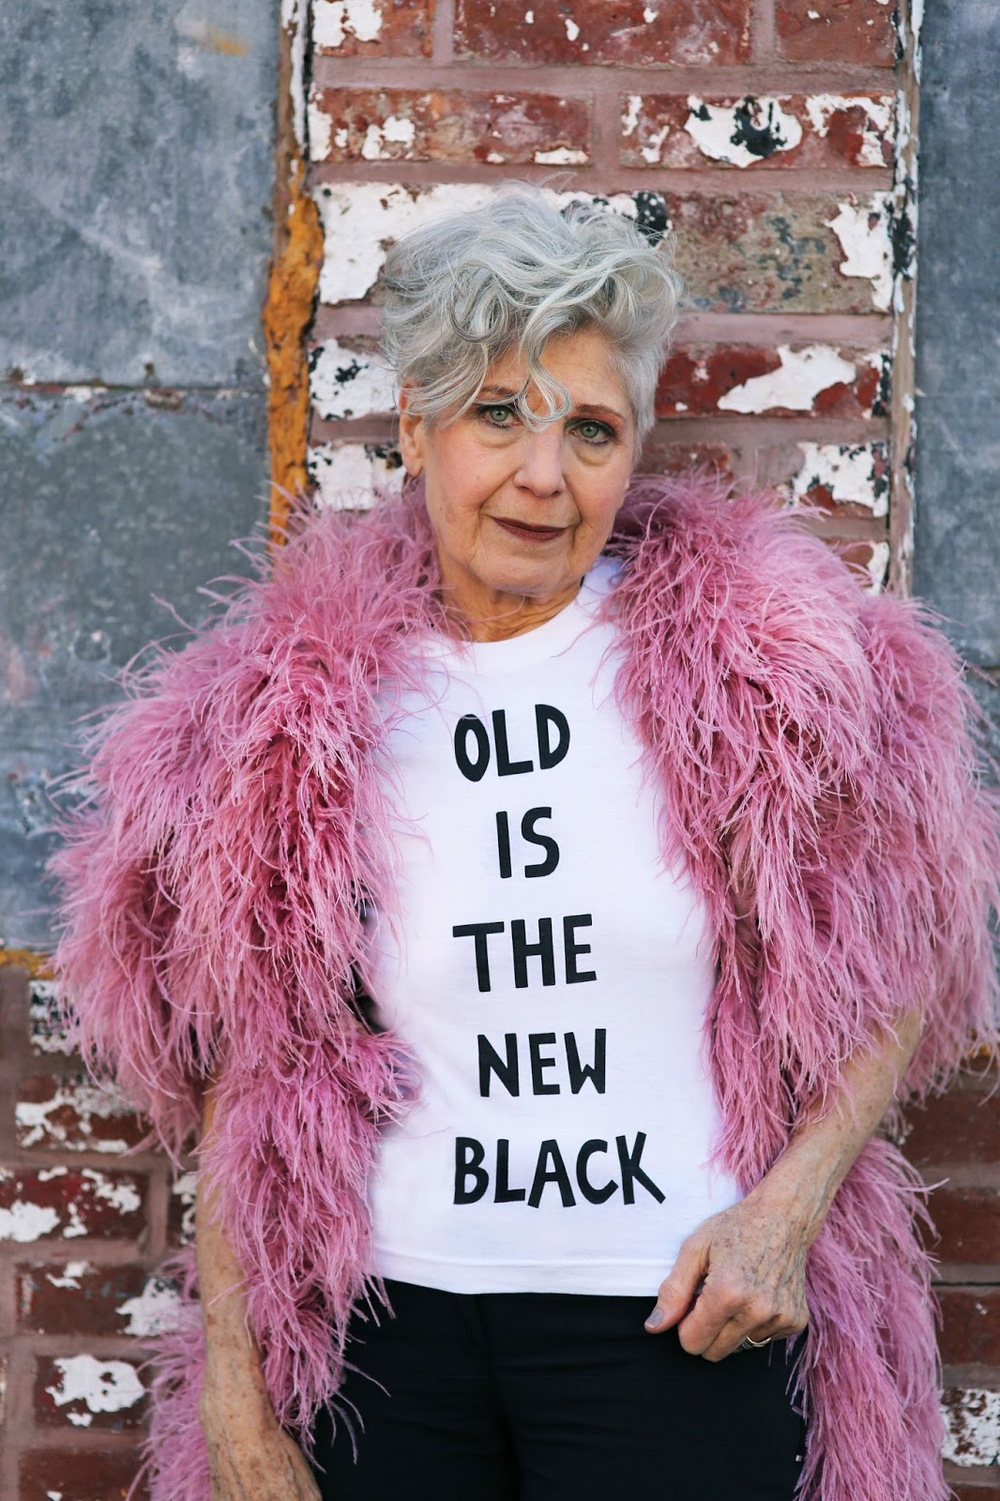 Debra Rapoport  para la edición limitada de  T-shirts  OLD IS THE NEW BLACK  que puedes adquirir haciendo  CLICK AQUI